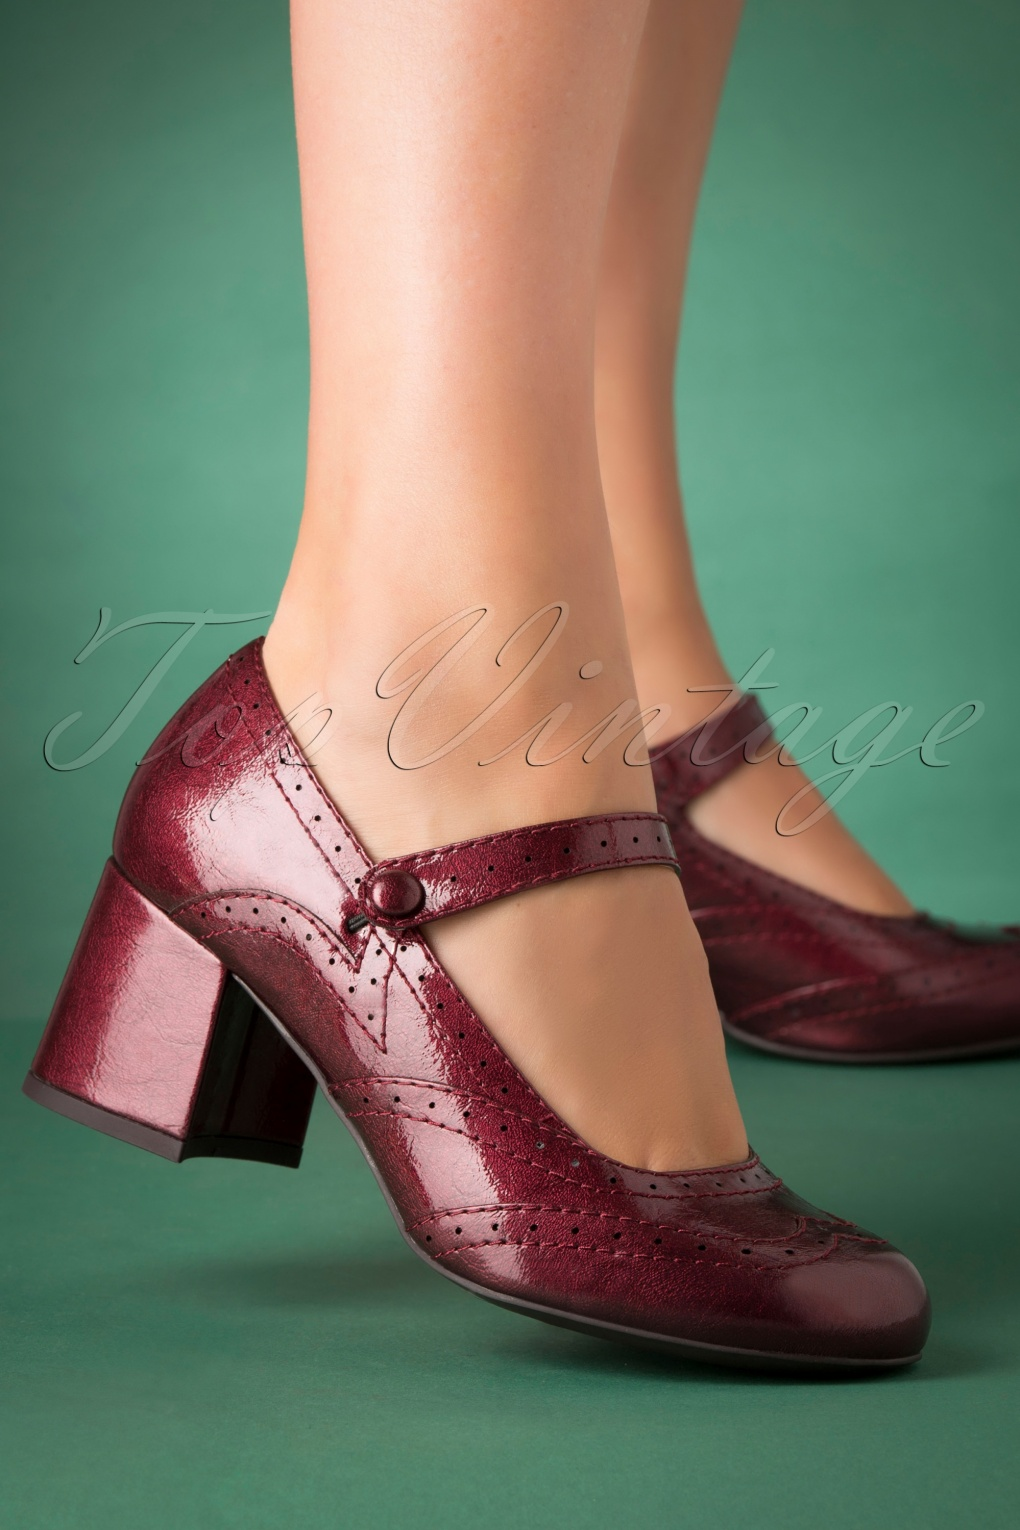 60s Shoes, Boots | 70s Shoes, Platforms, Boots 60s Cora Mary Jane Patent Pumps in Red £68.10 AT vintagedancer.com